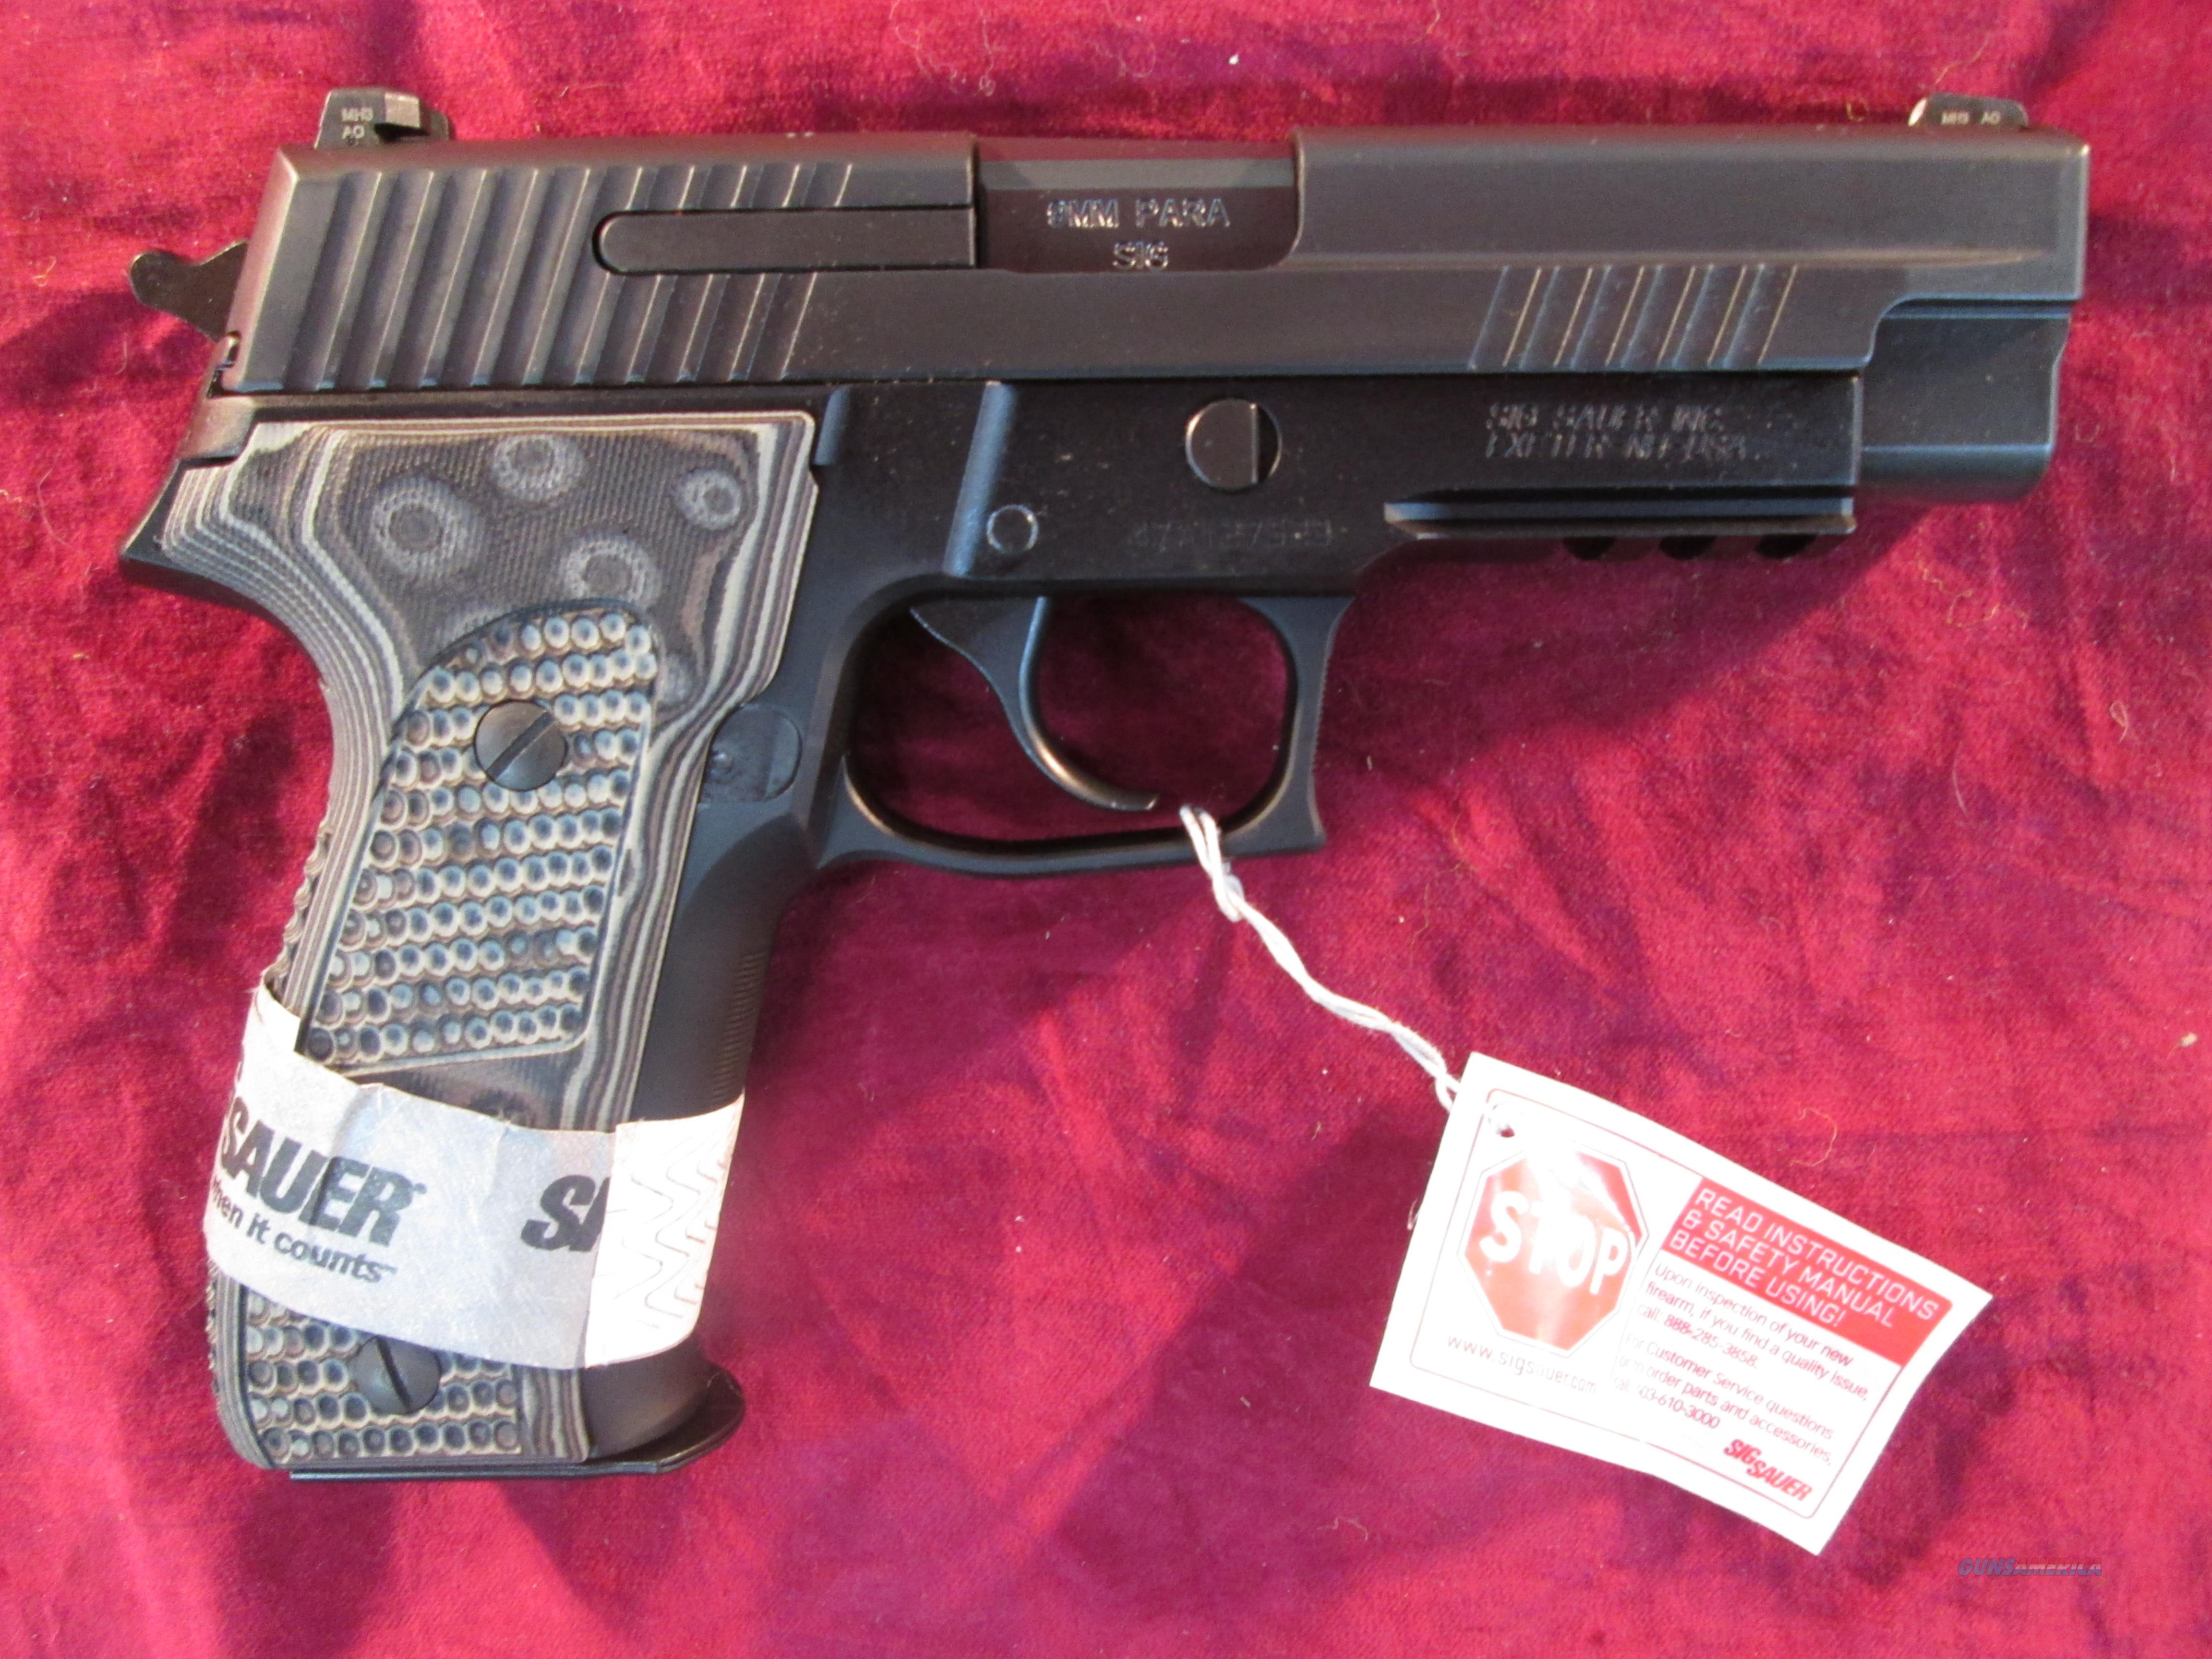 SIG SAUER P226 EXTREME 9MM W/ NIGHT SIGHTS NEW  Guns > Pistols > Sig - Sauer/Sigarms Pistols > P226